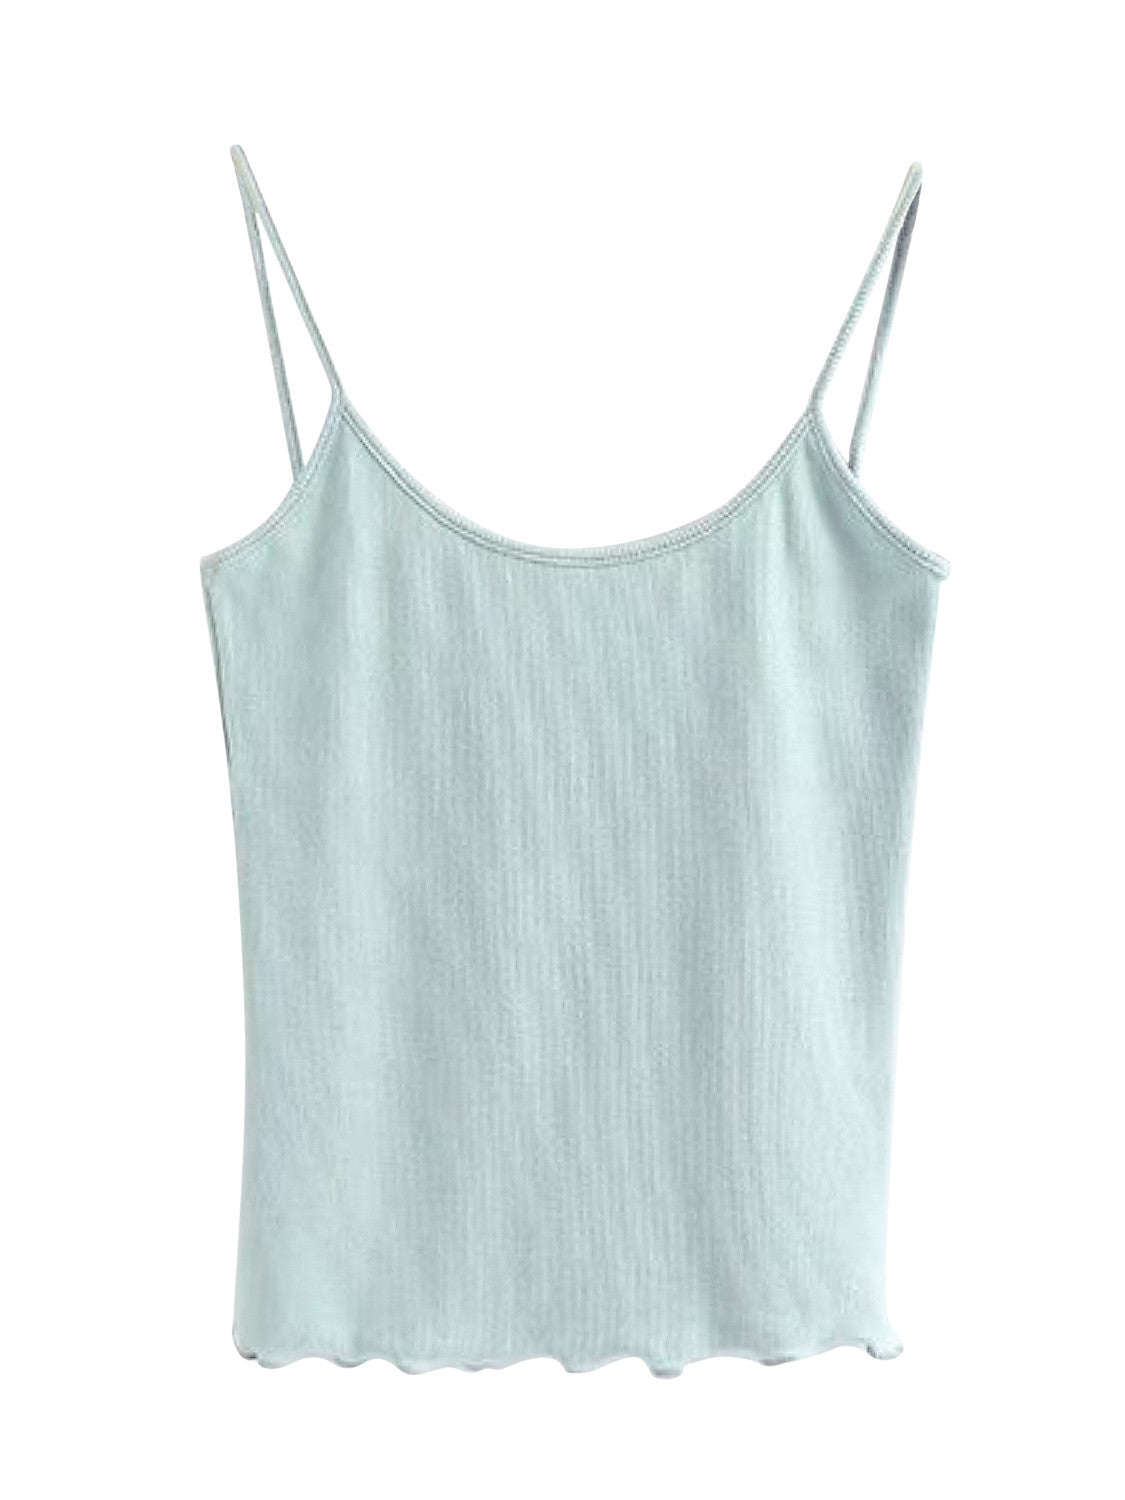 White Backless Cami Vest Top